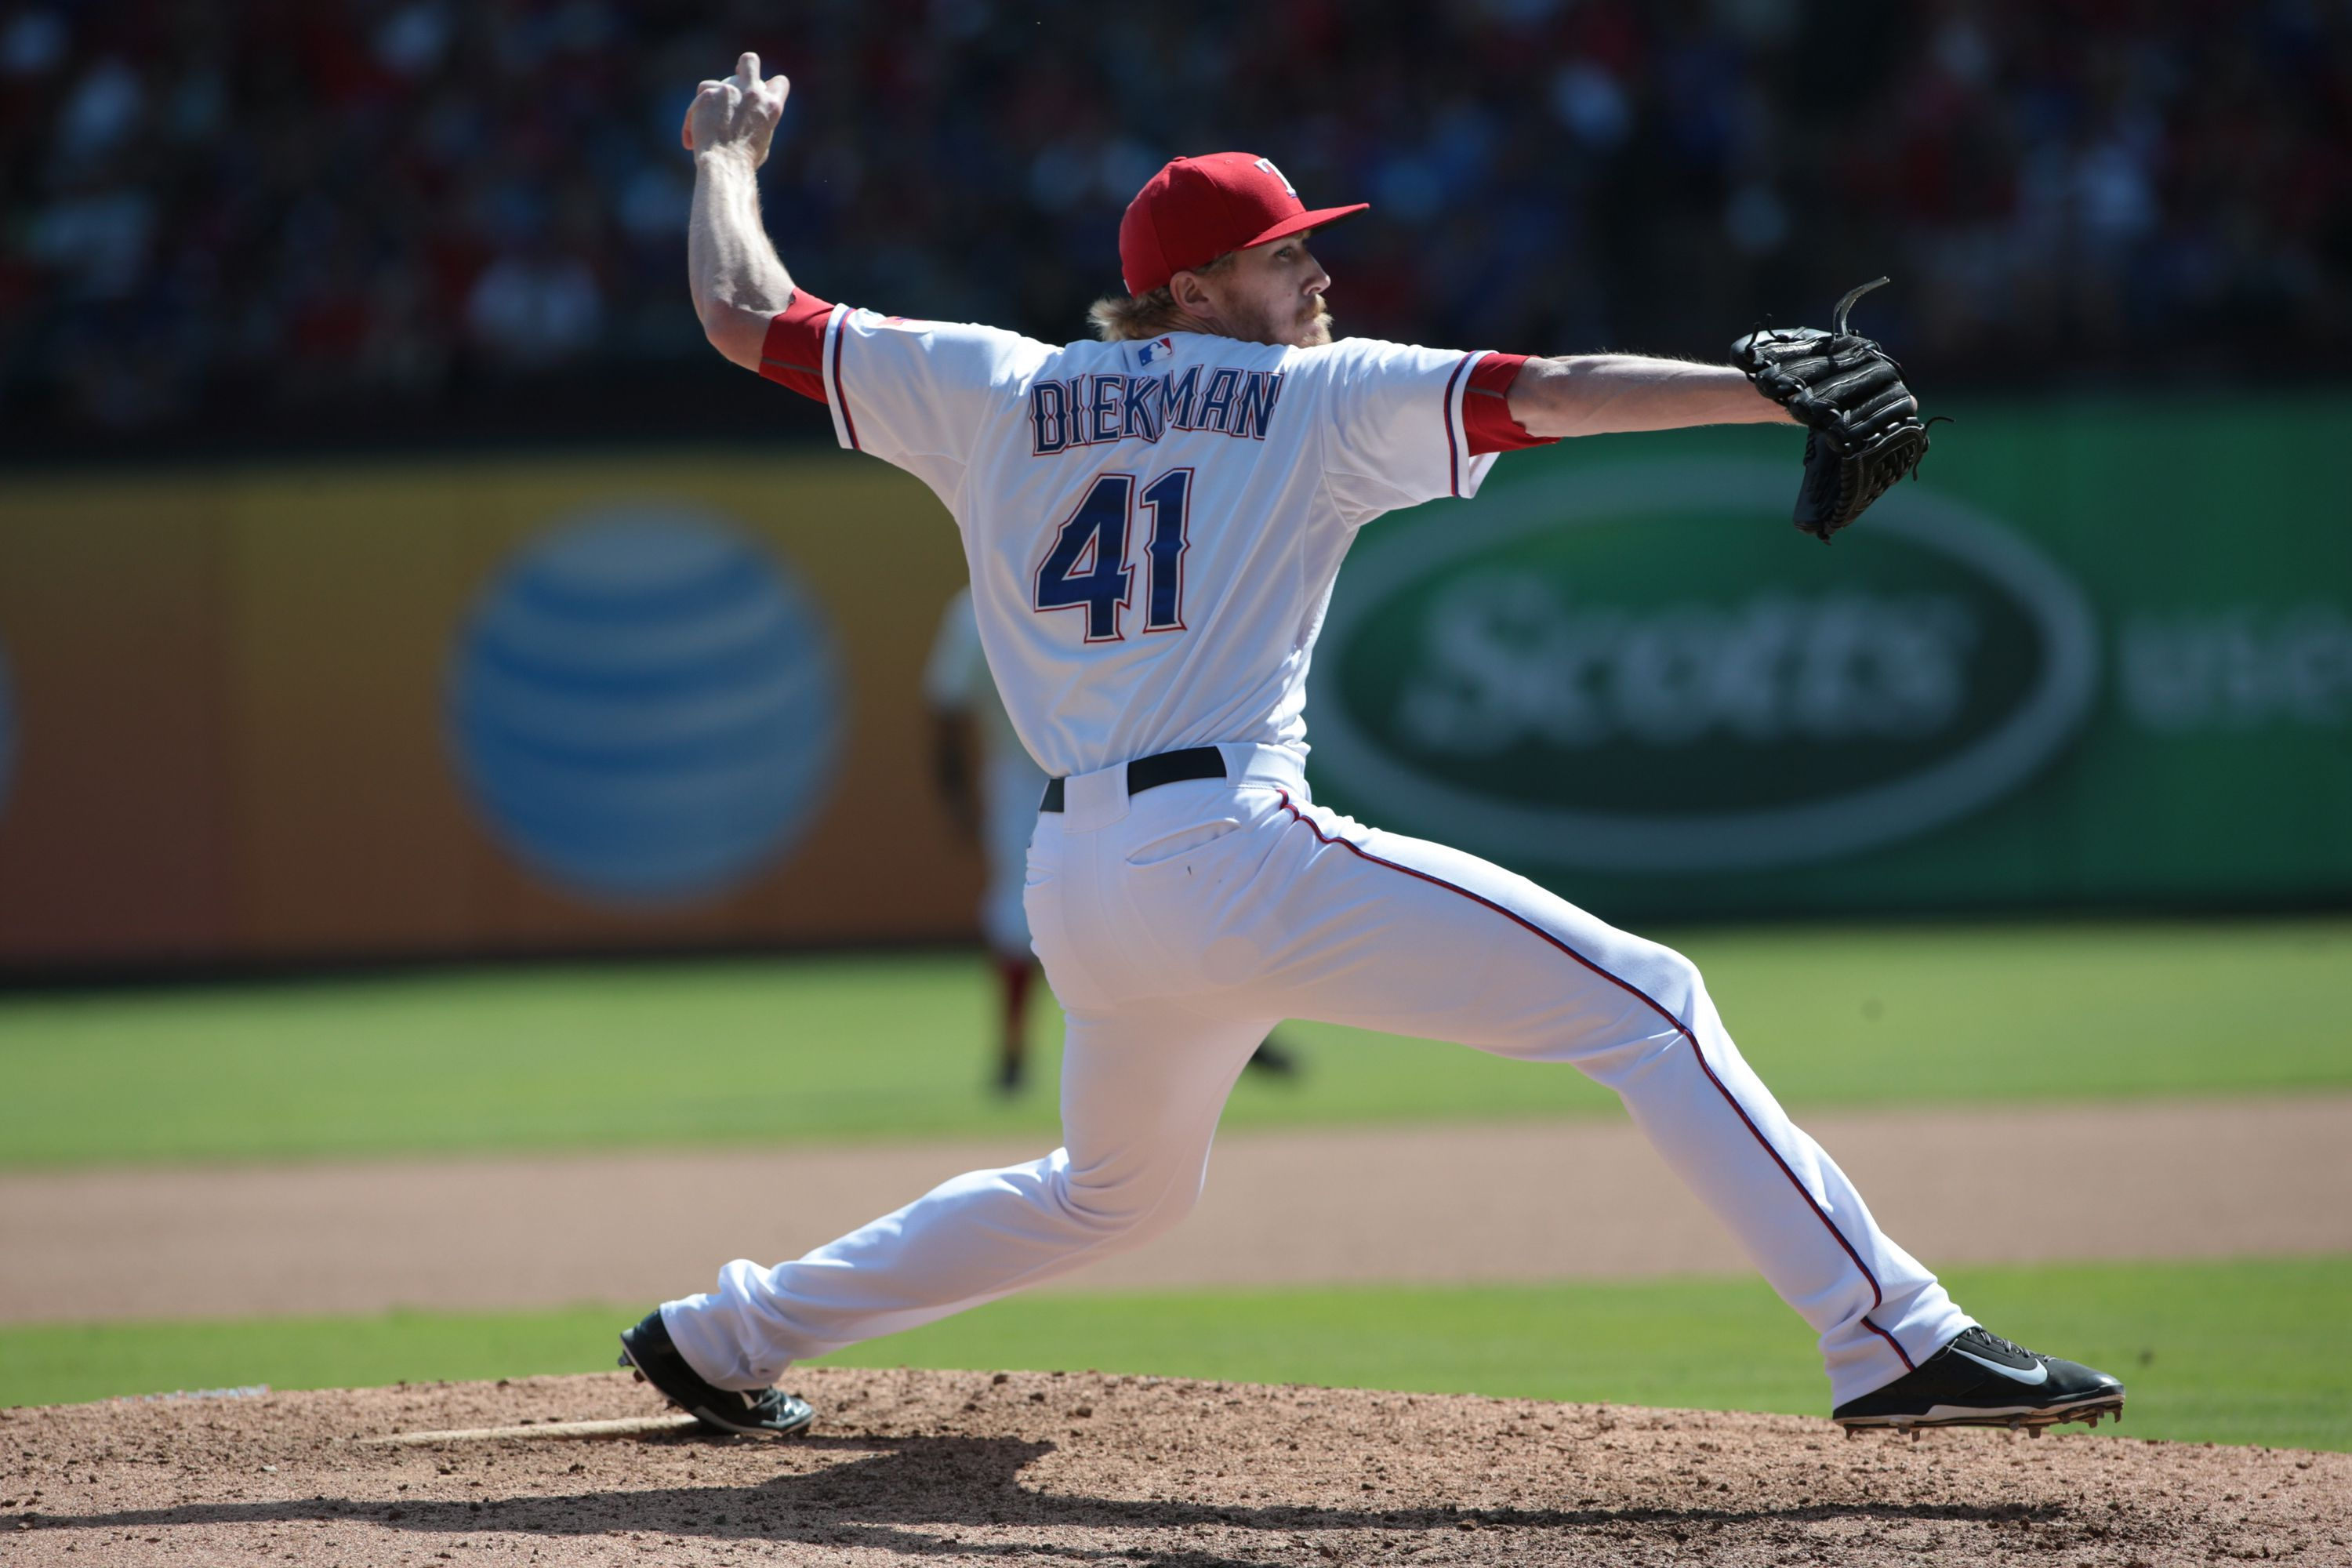 Jake Diekman's Message For Those With IBD: Gut It Out